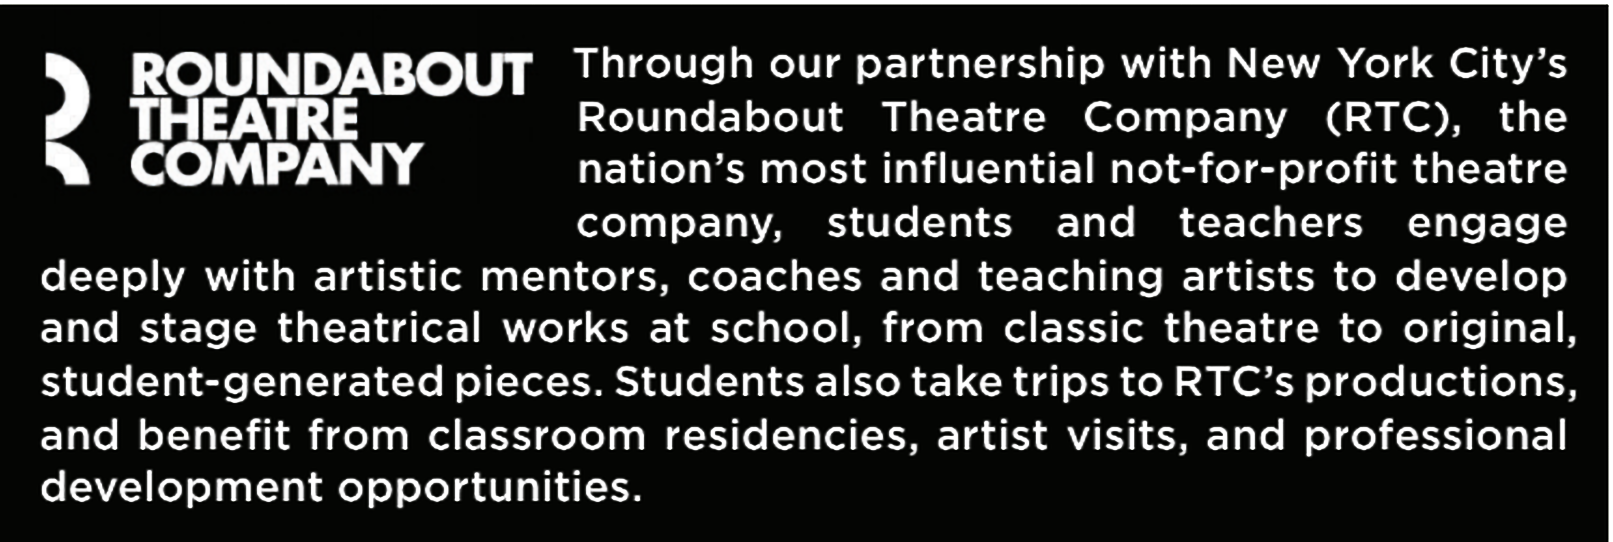 Students develop professional through our partnership with Roundabout Theatre Company.